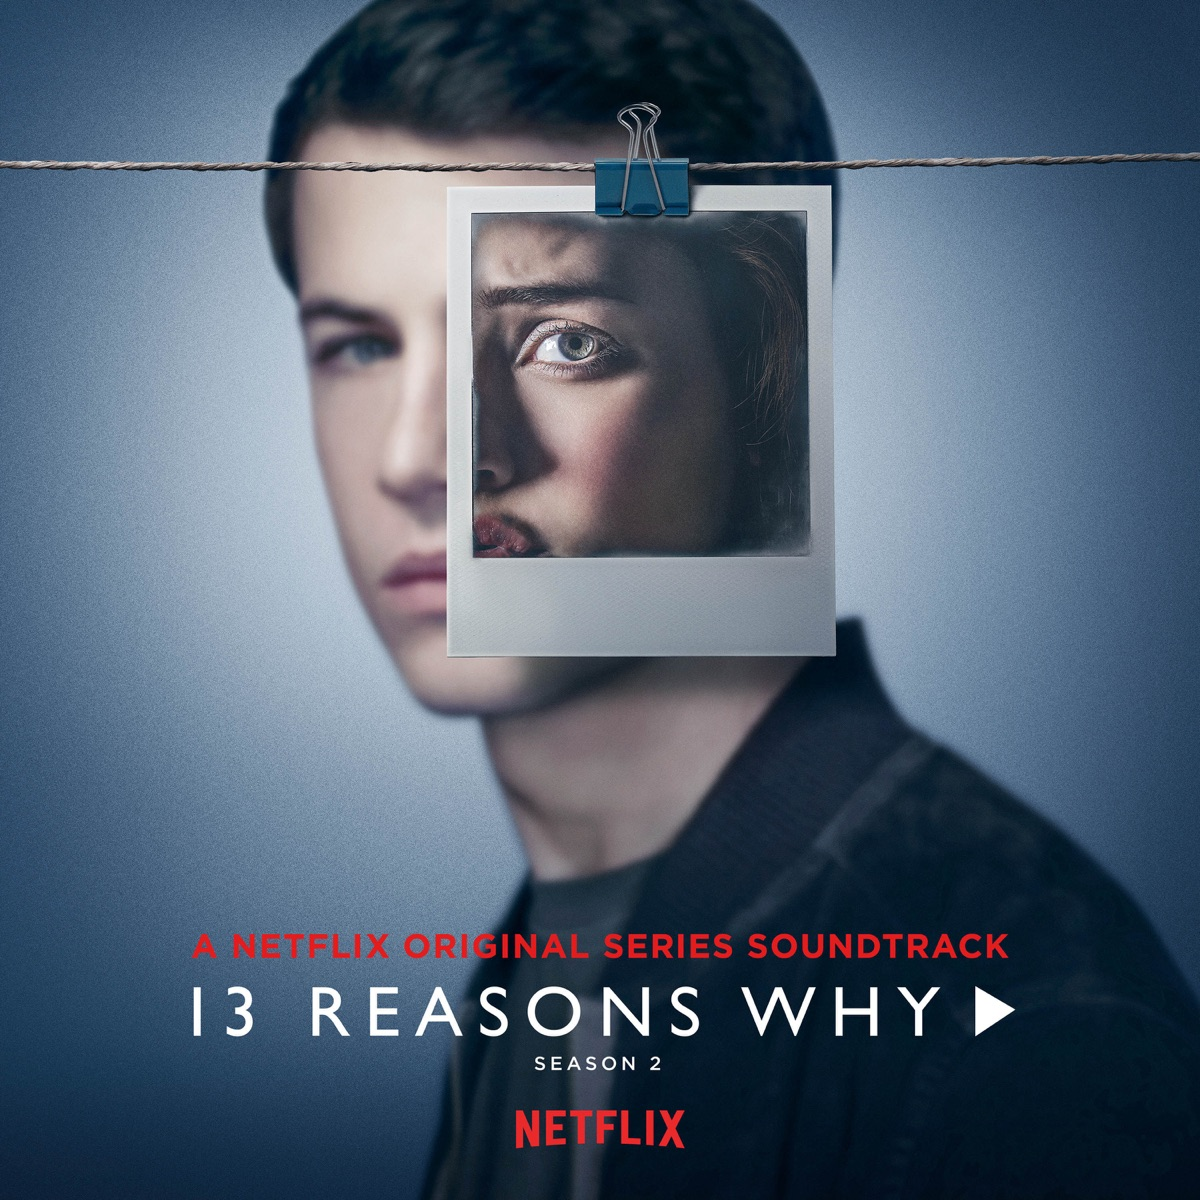 13 Reasons Why Season 2 Music from the Original TV Series Selena Gomez OneRepublic  YUNGBLUD CD cover